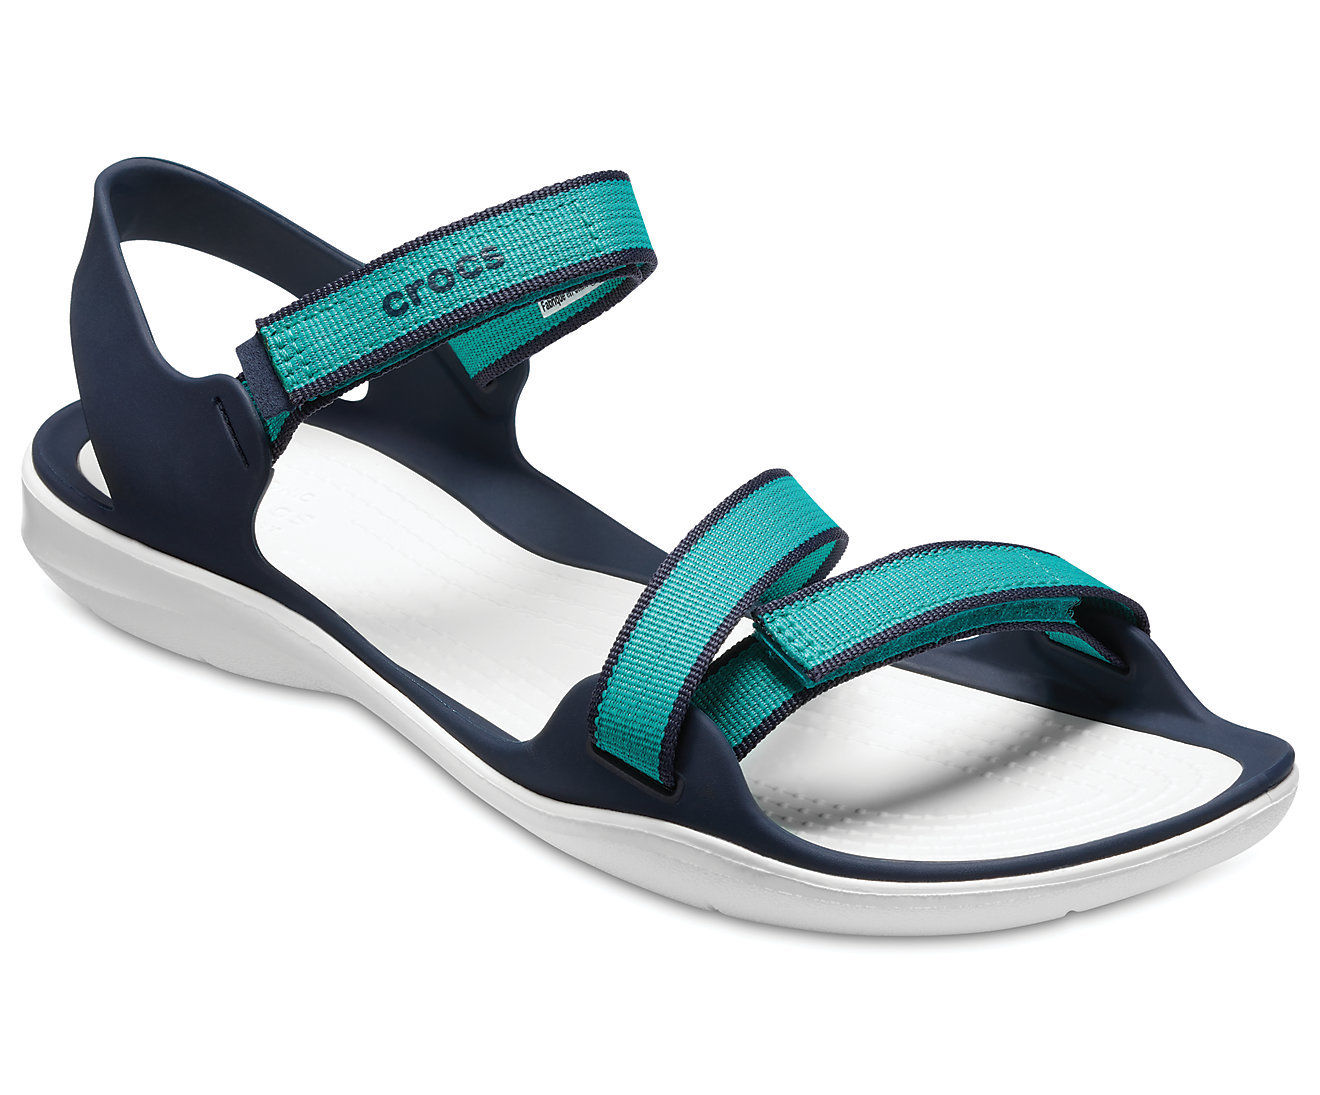 9c34c0501 Crocs Swiftwater Webbing Sandals Teal Strappy Flats Womens Walking Cas –  The Shoe Centre